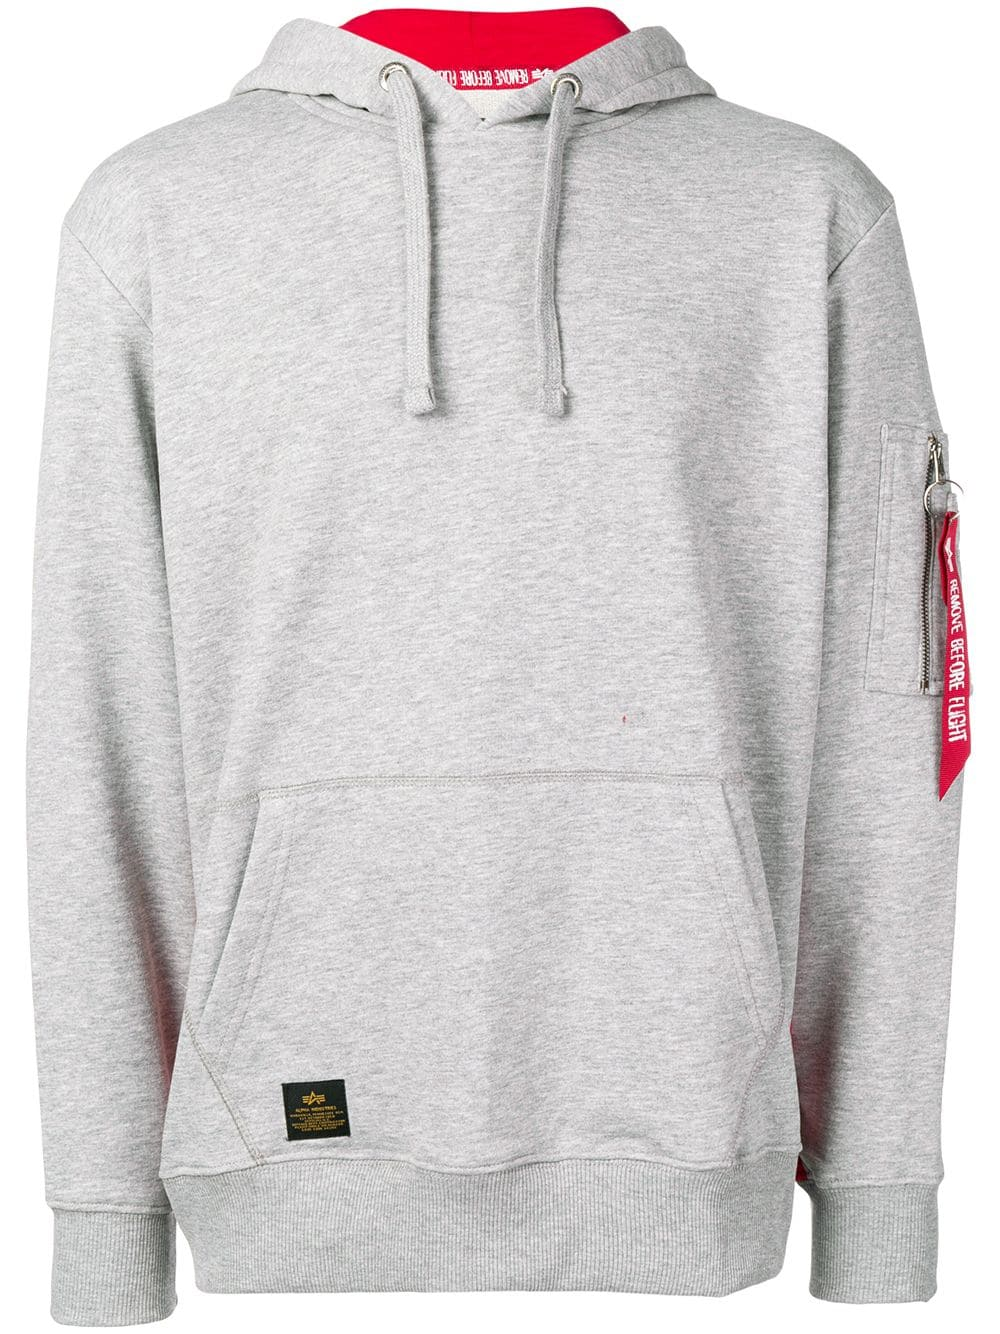 787c305e7 ALPHA INDUSTRIES ALPHA INDUSTRIES REMOVE BEFORE FLIGHT HOODIE - GREY.  #alphaindustries #cloth